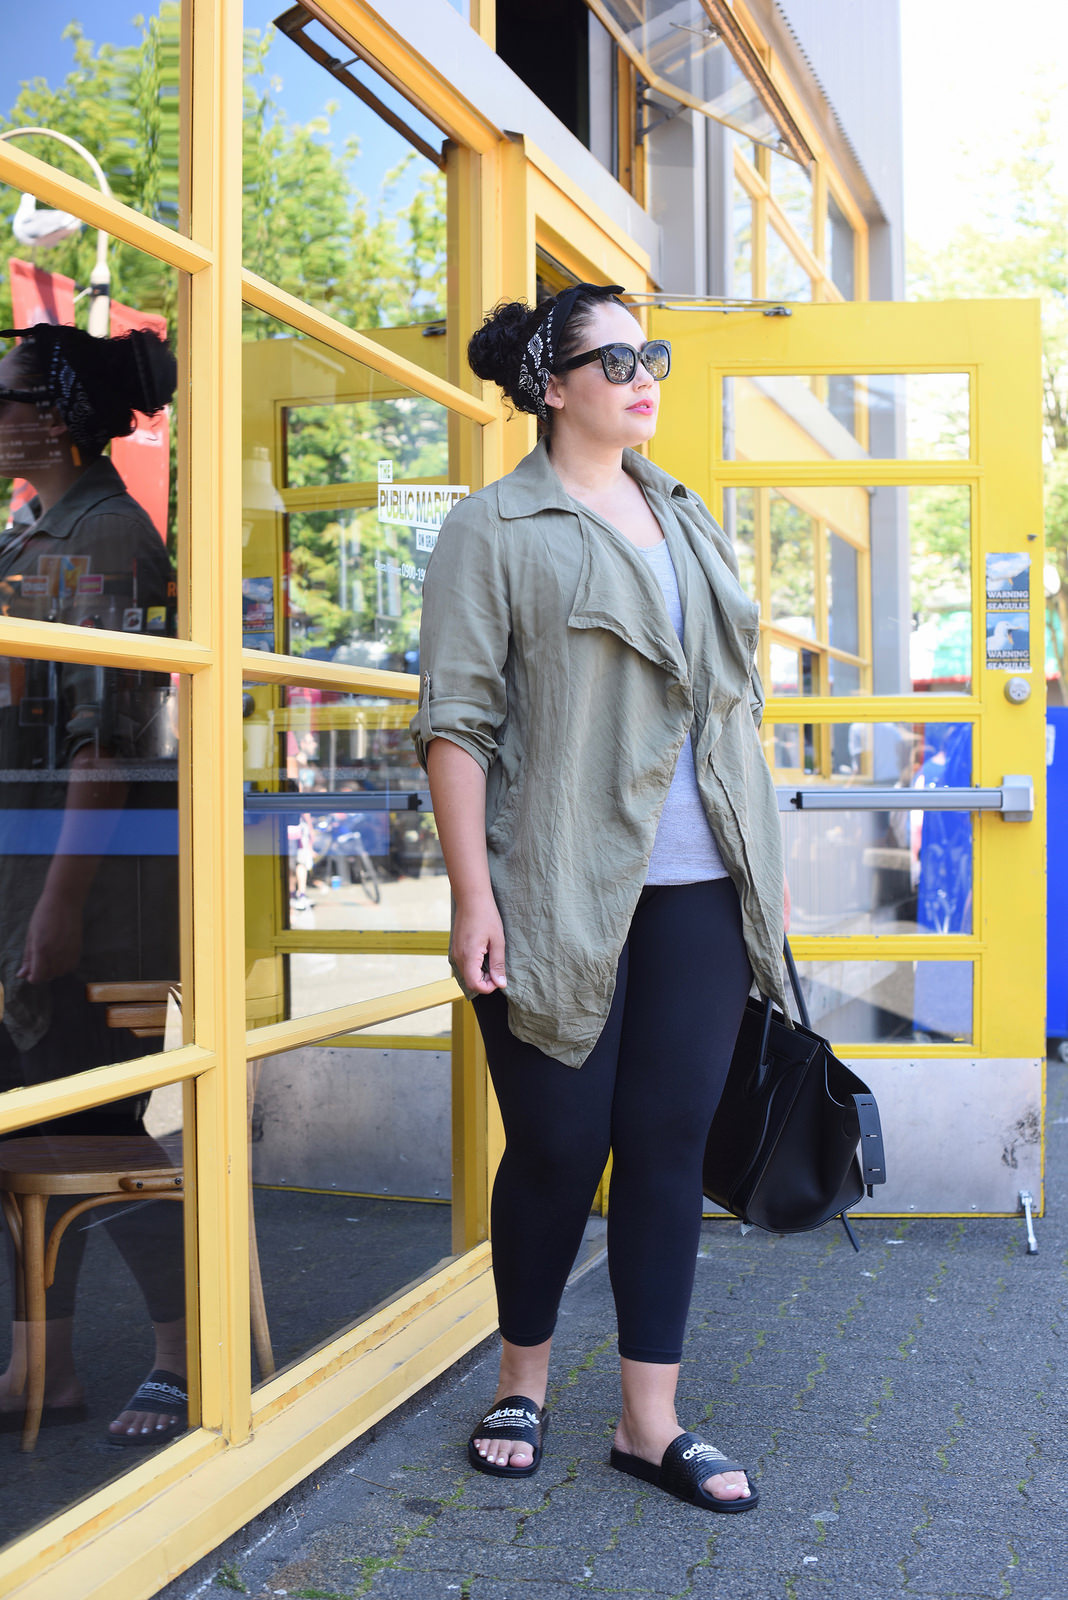 Tanesha Awasthi (formerly Girl with Curves) wearing a grey tee, waterfall utility jacket, leggings and Celine Phantom bag at the Granville Island Public Market in Vancouver.